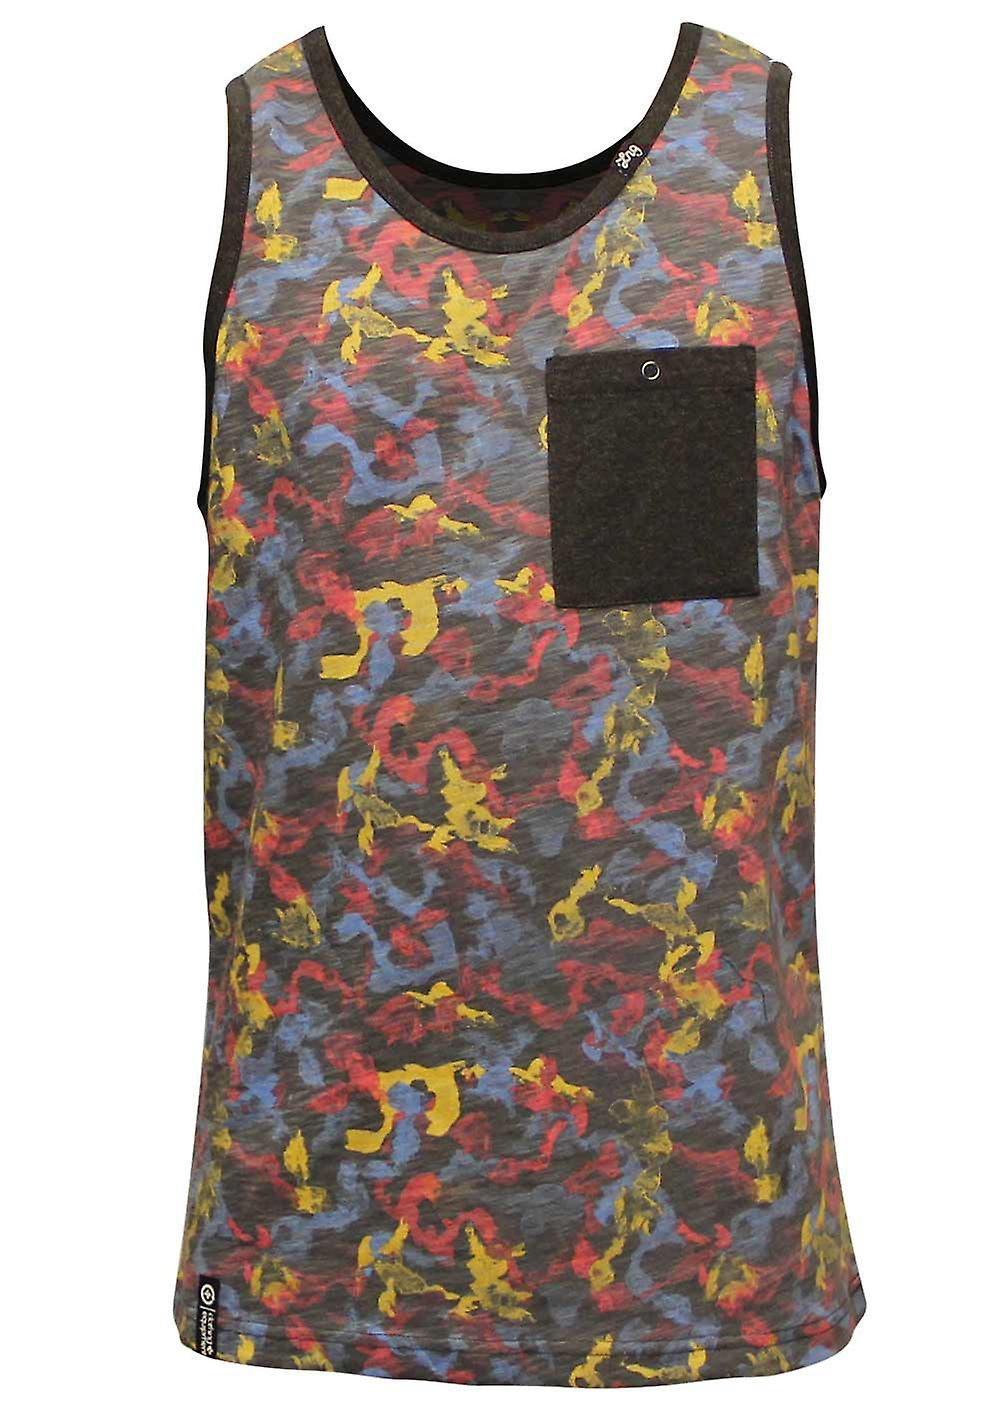 Lrg Tree 47 Tank Top Black Camouflage